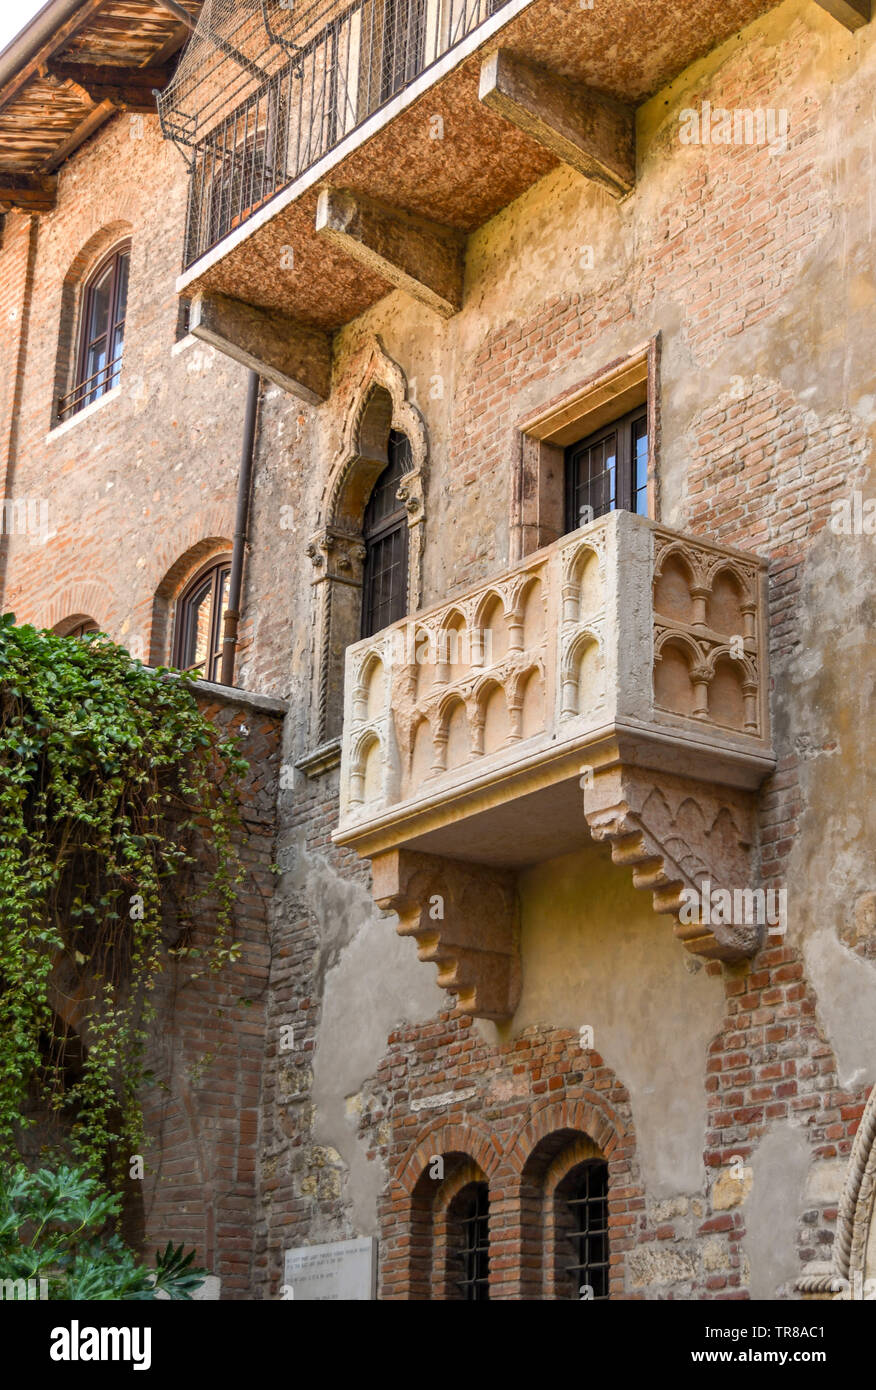 "VERONA, ITALY - SEPTEMBER 2018: Juiet's balcony on the House of Juliet or ""La Casa di Giulietta"", a major tourist attraction in Verona. Stock Photo"